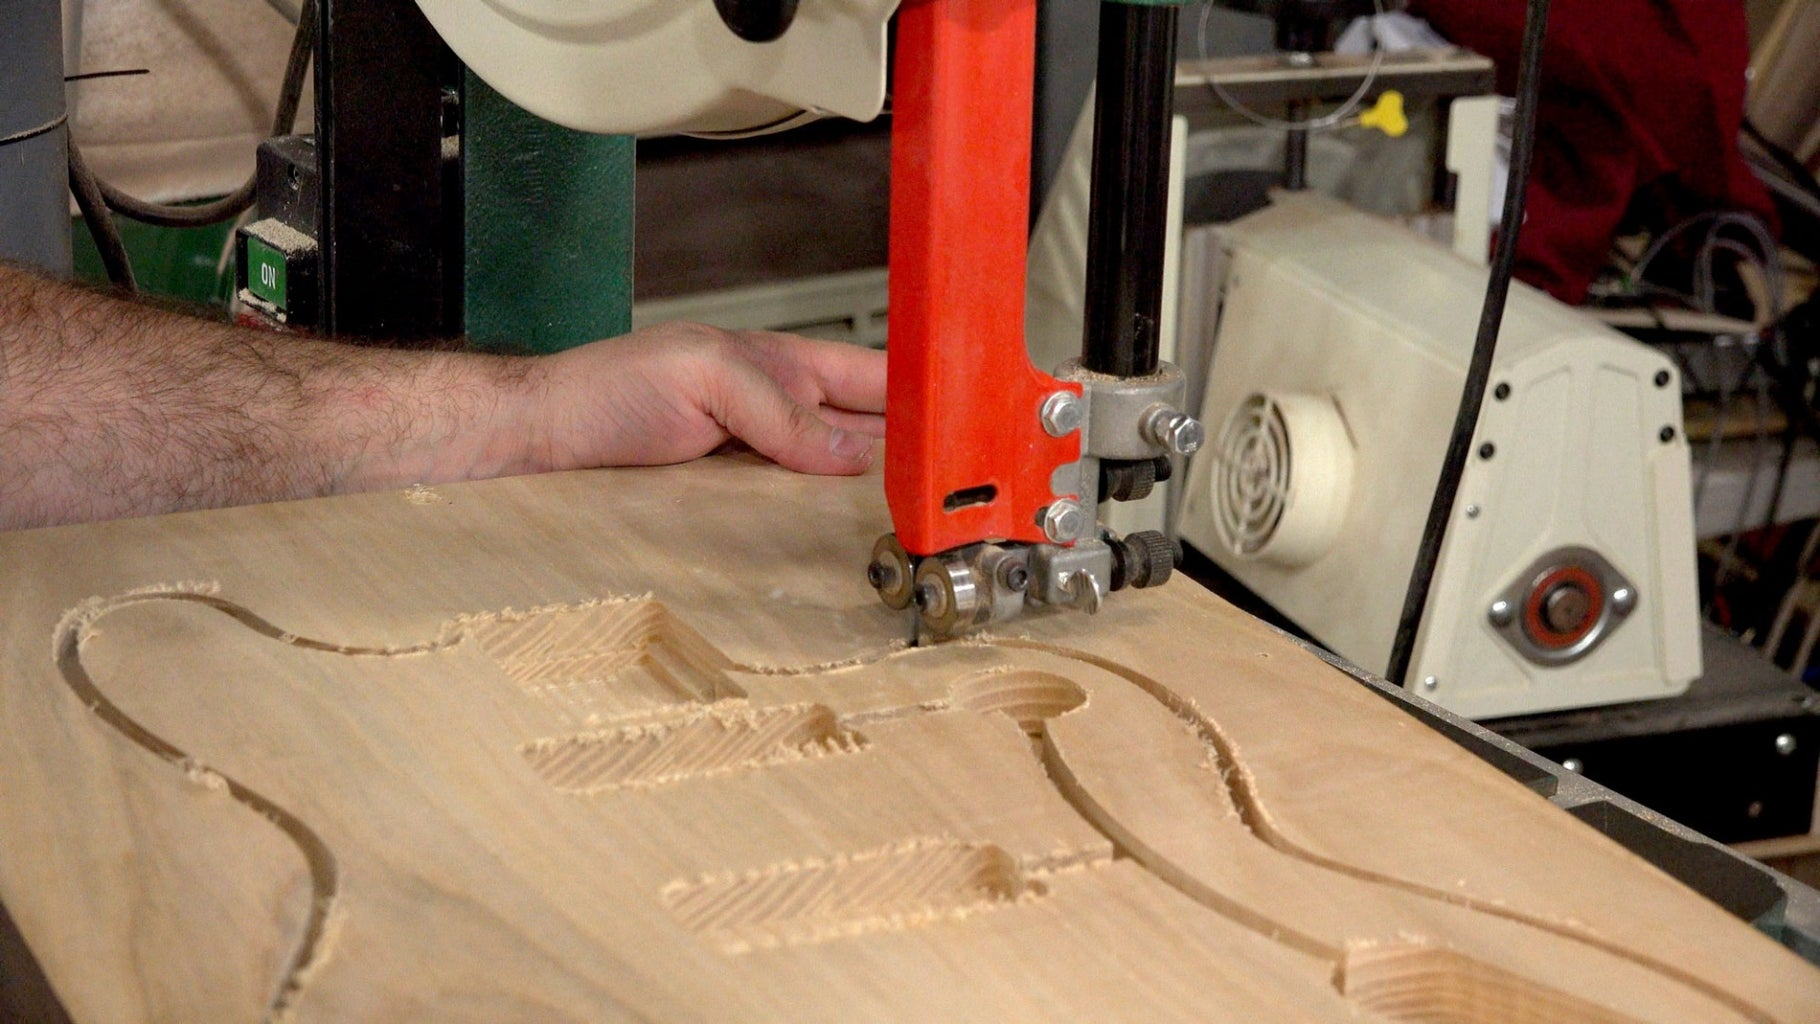 Rough Cutting on the Bandsaw